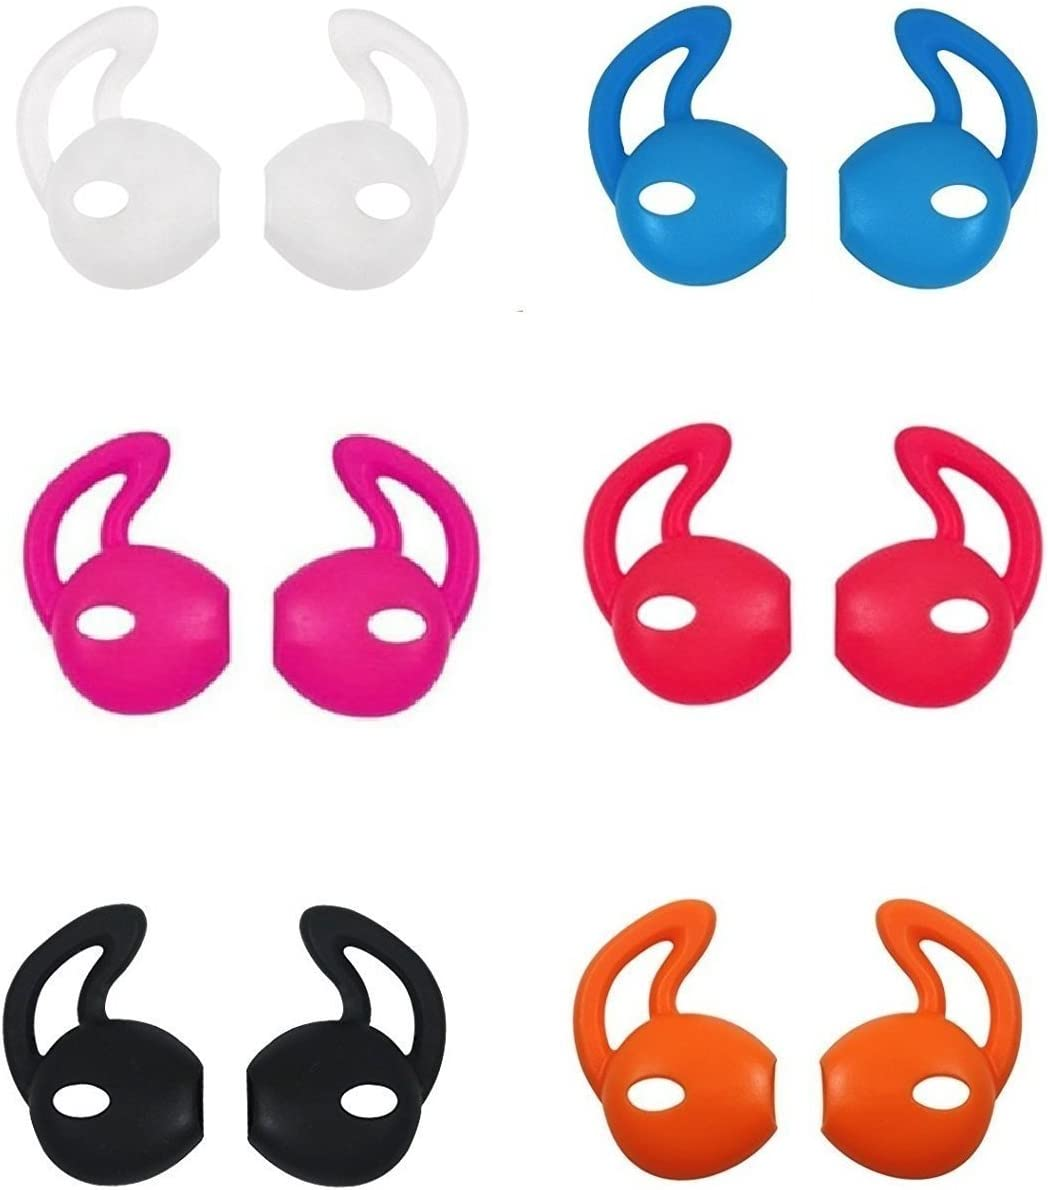 Ear Hooks Gel Covers for Earphones Headphones Earbuds Earpods Soft Anti-Slip 12 Pieces Ear Tips (Black, White, Red, Orange, Clear, Blue, Hot Pink)